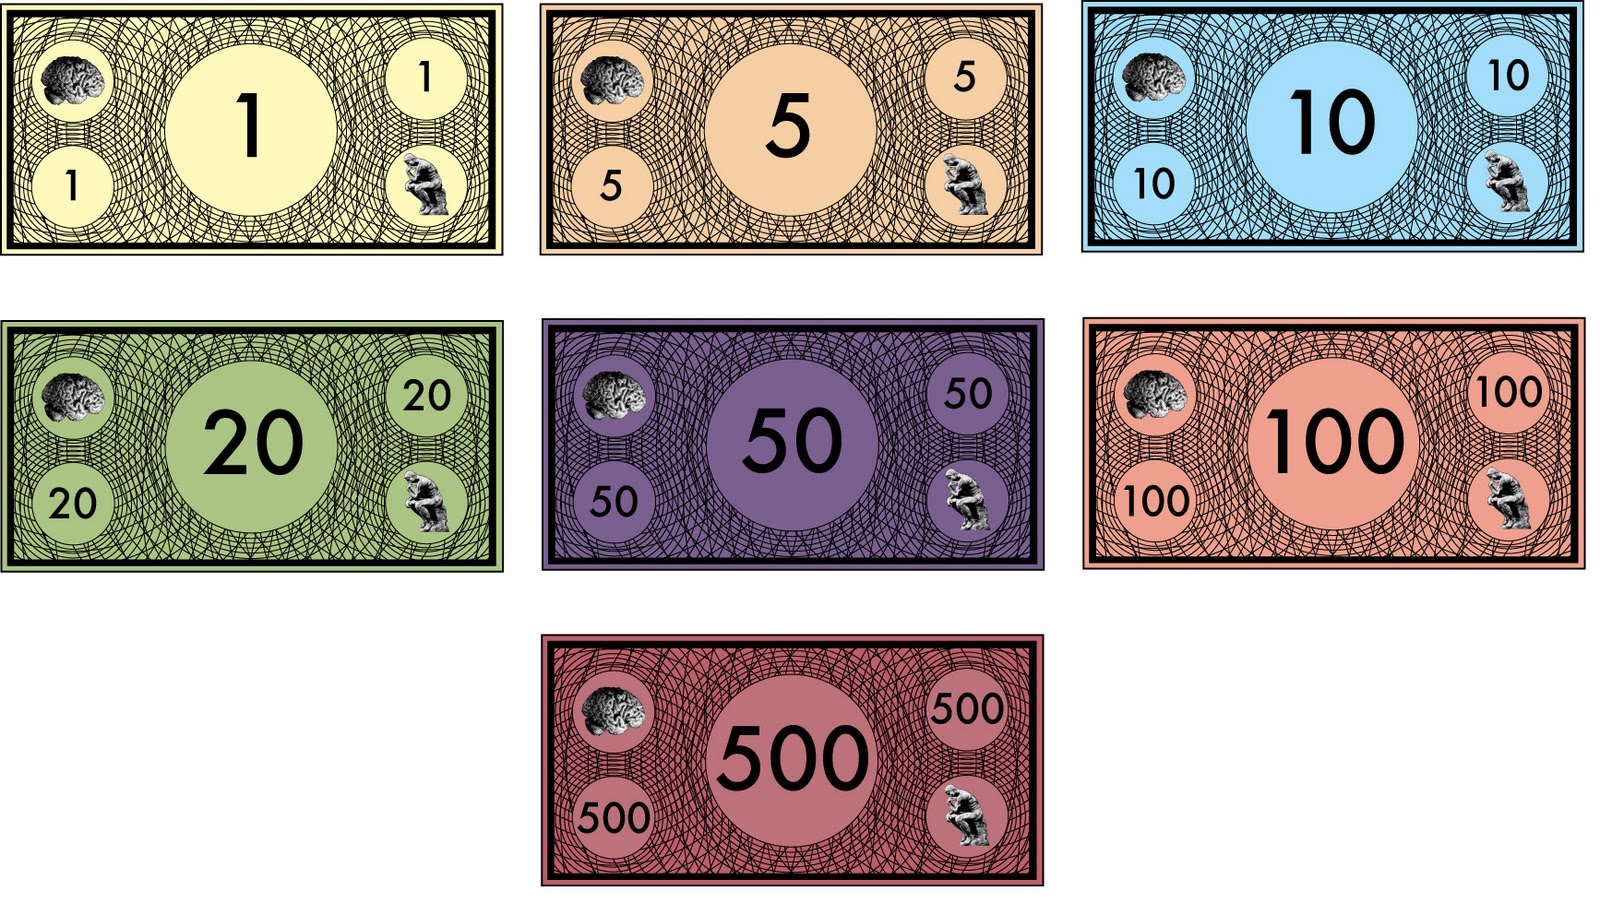 It's just a photo of Printable Monopoly Money intended for $20